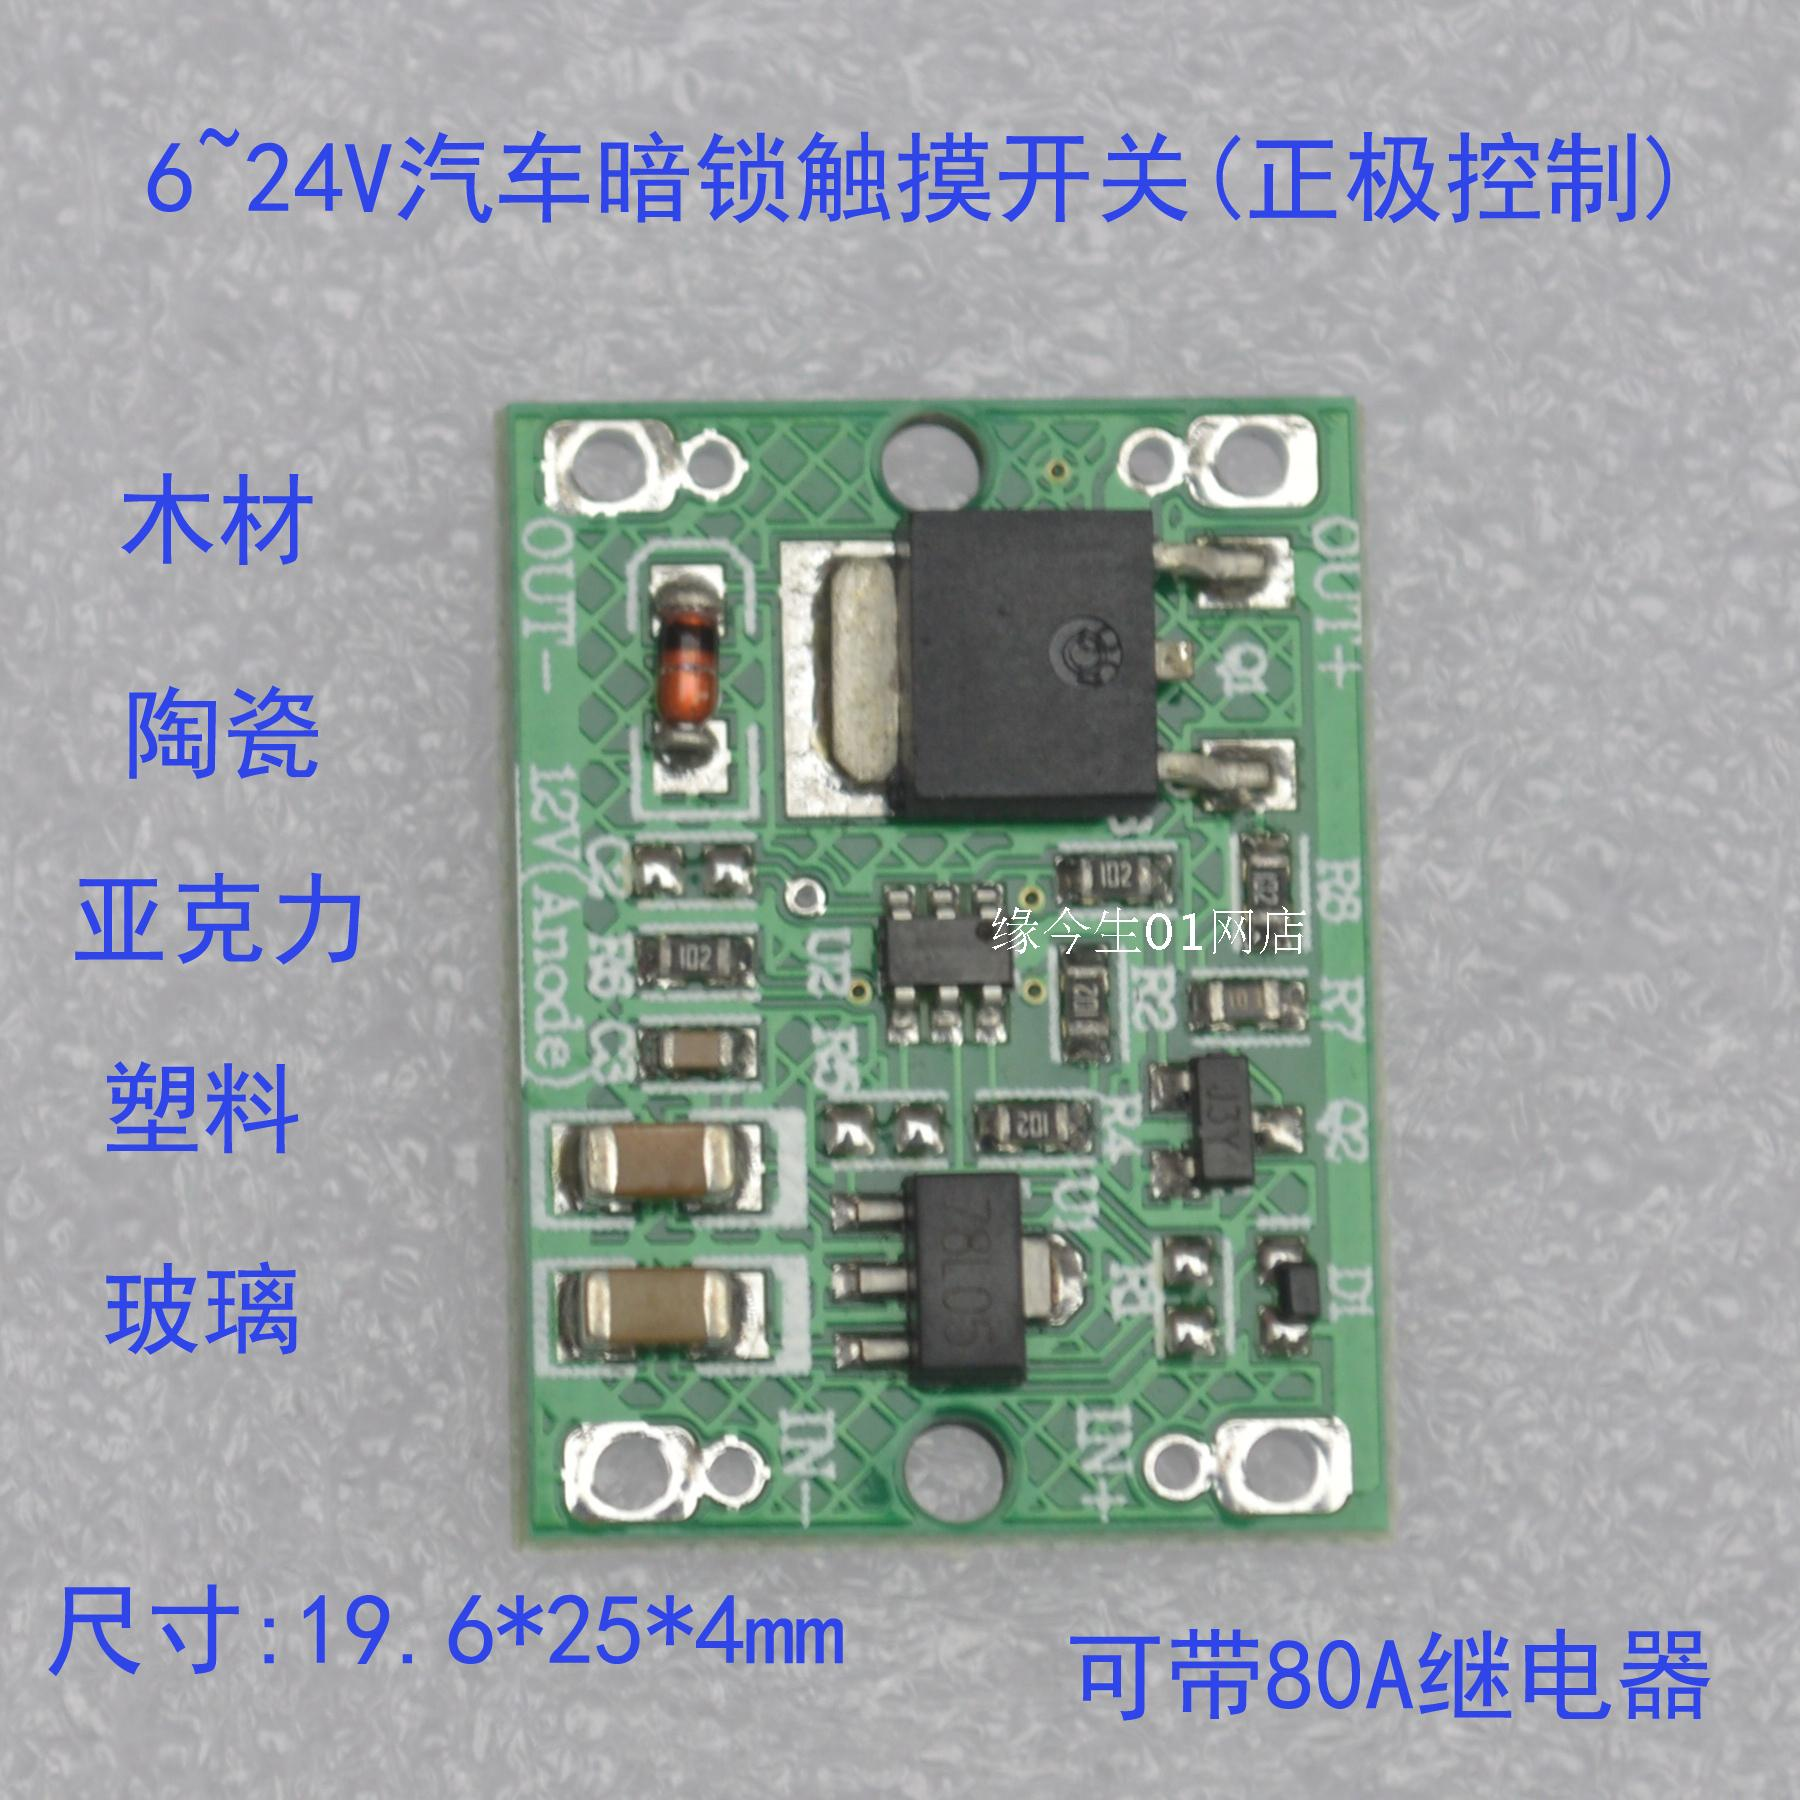 Usd 561 Car Built In Lock Headlight Touch Switch Positive Control Time Delay Circuit Module W Vehicle Electrical 12v Smart Panel Relay Board